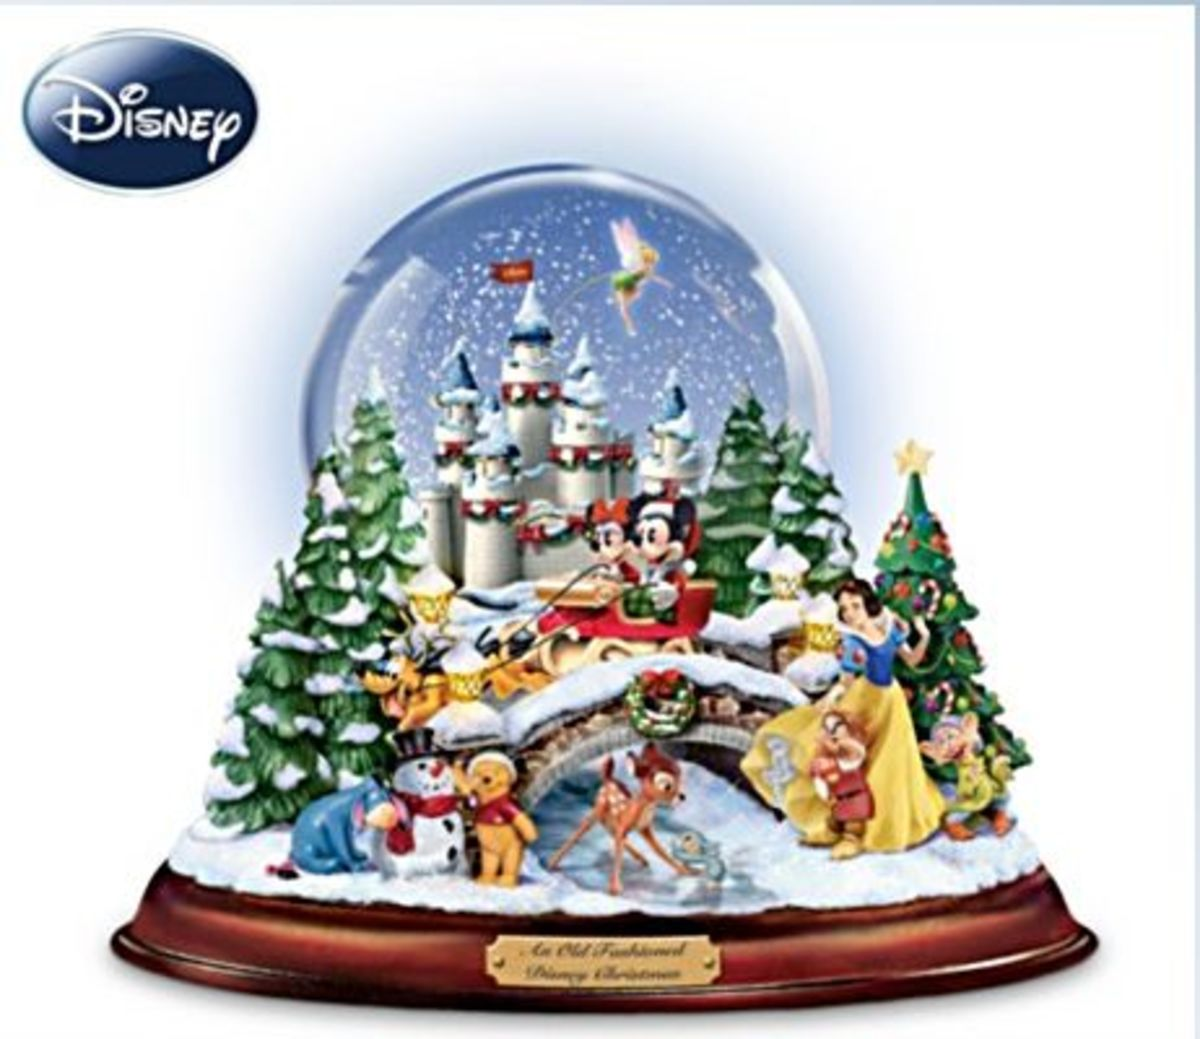 Disney Old Fashioned Christmas Globe